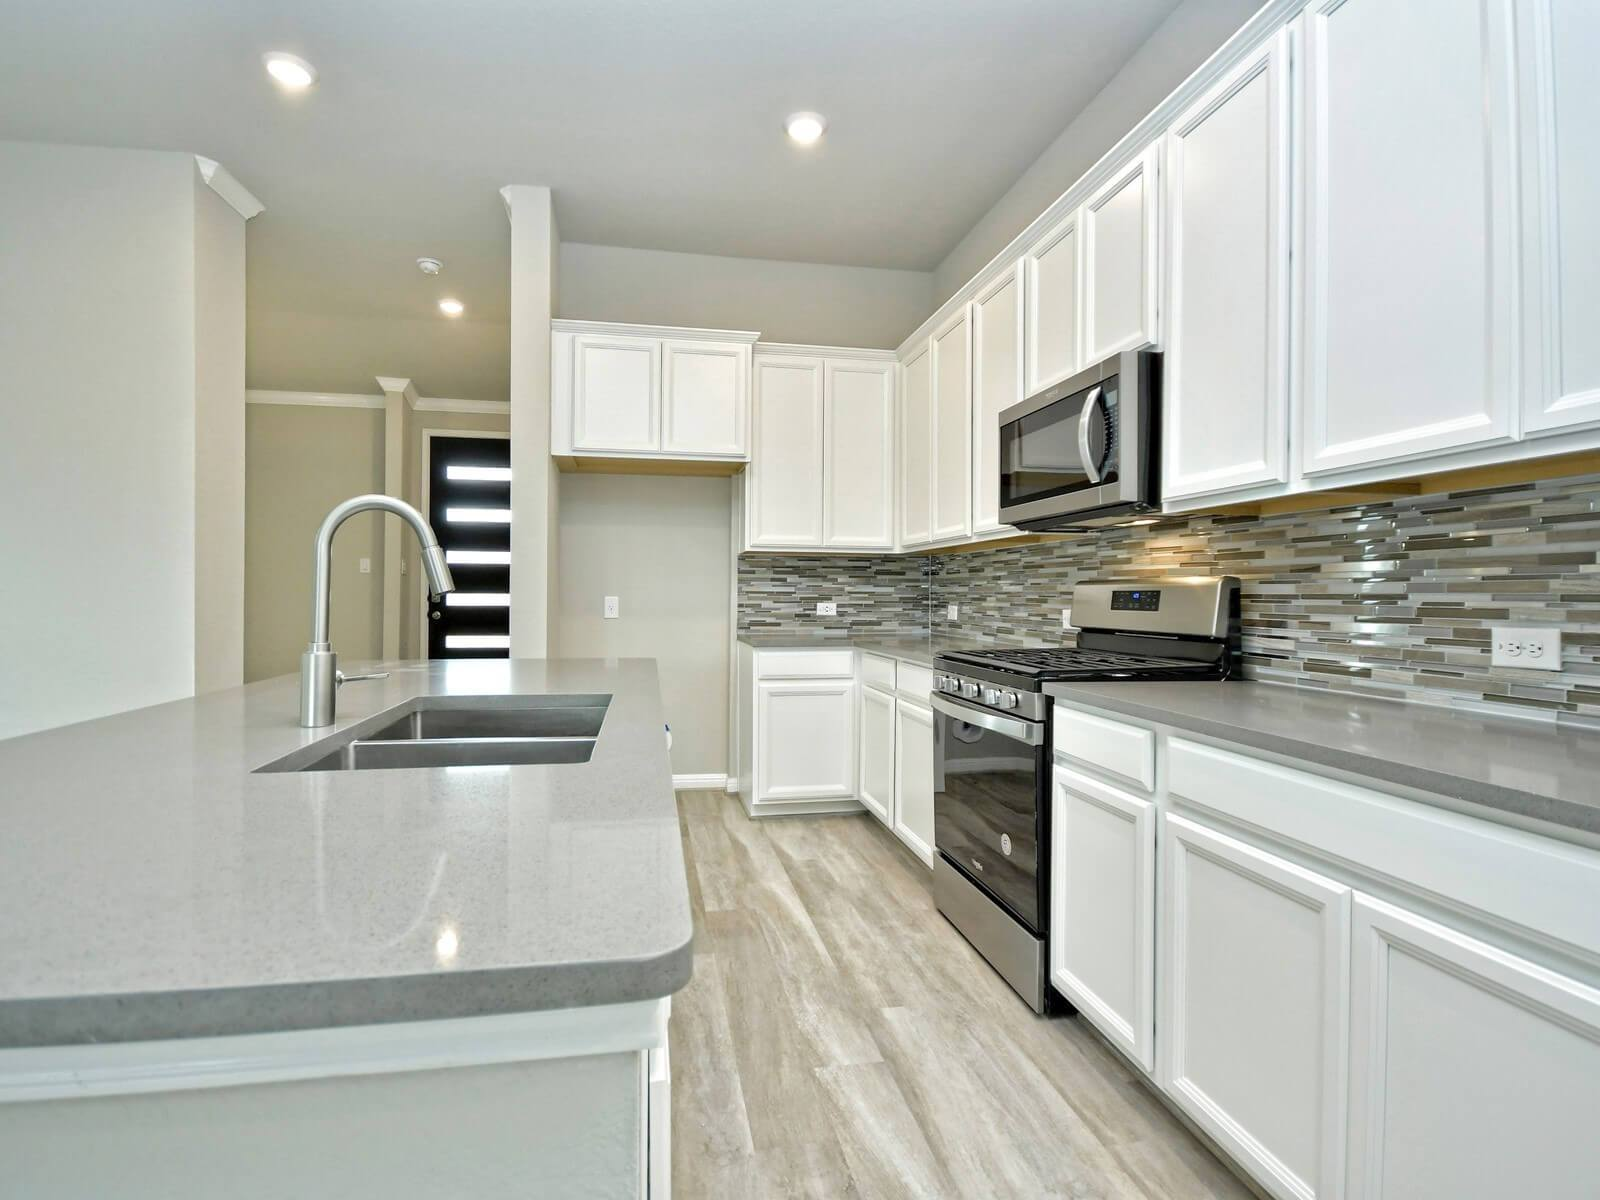 Kitchen featured in The San Saba (3015) By Meritage Homes in San Antonio, TX